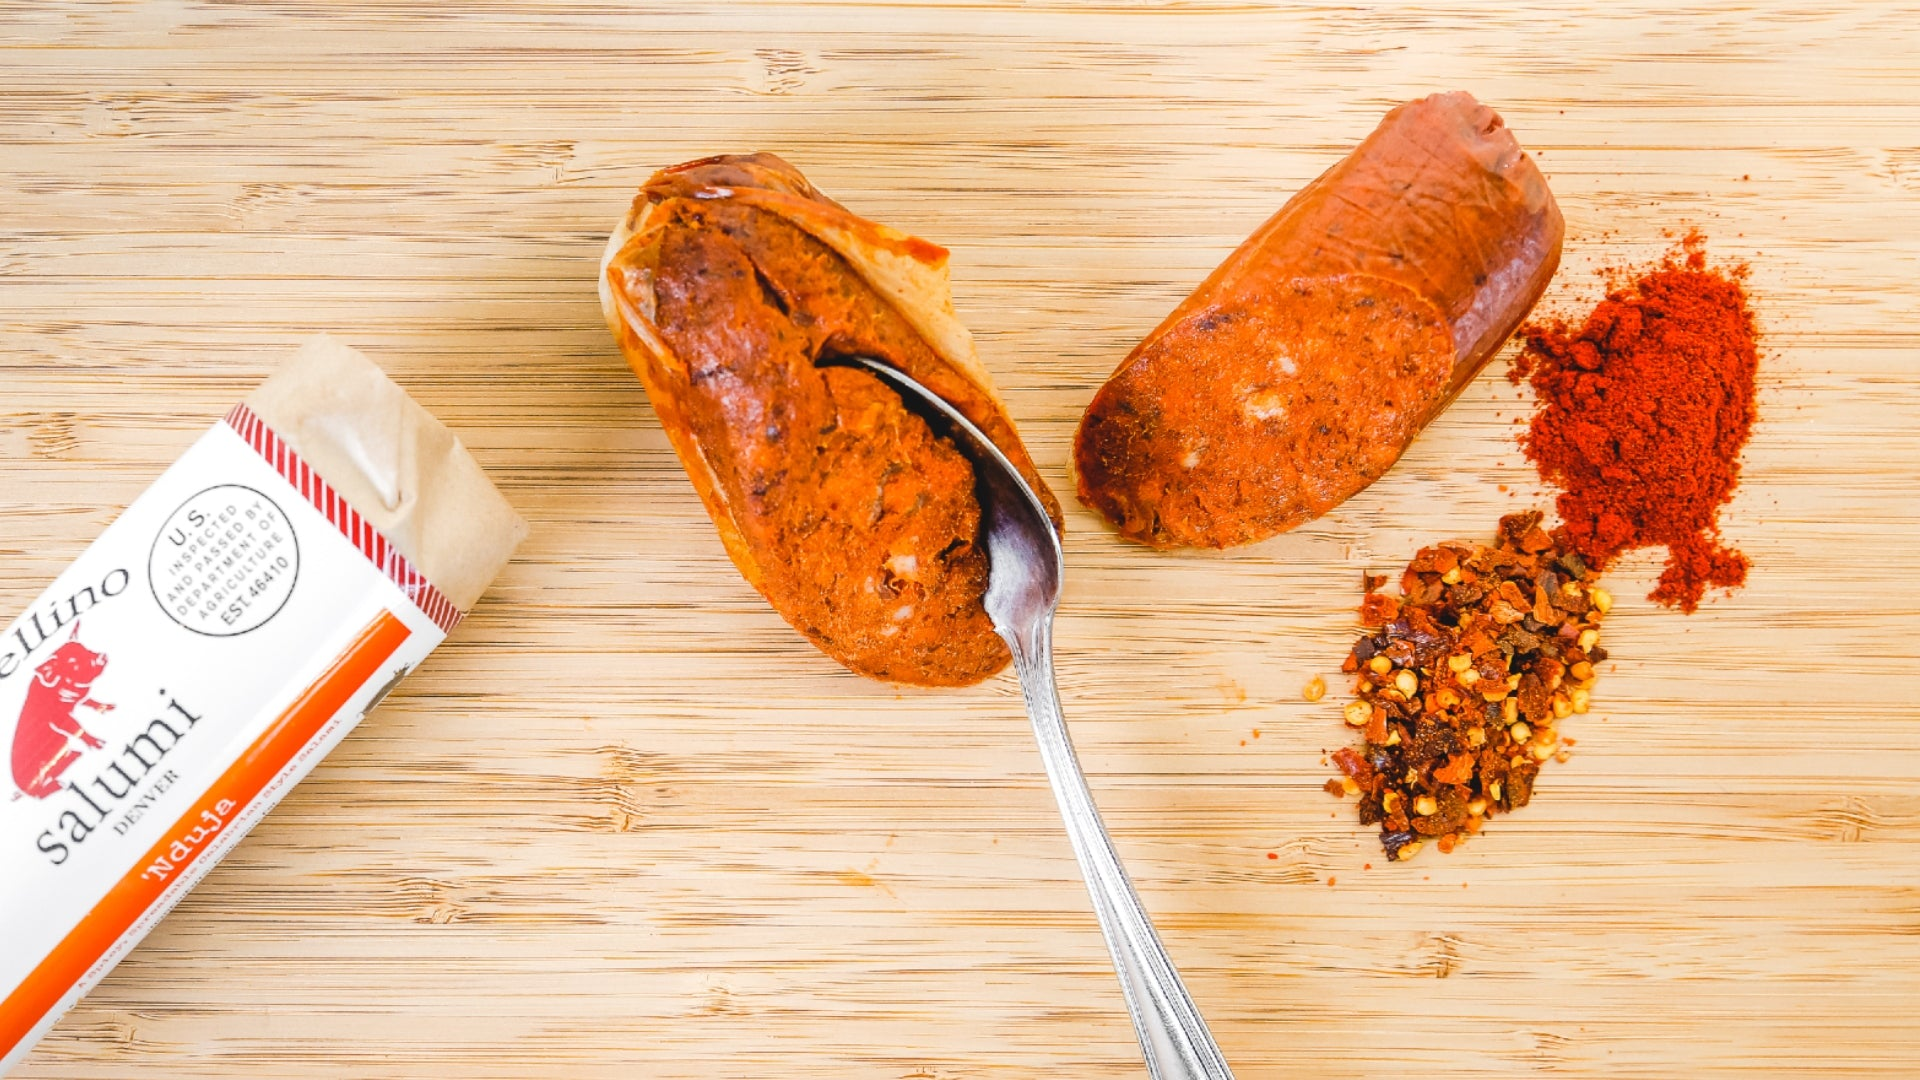 A picture shot from above of 'Nduja Salami on a cutting board. One chub of the salami is in it's packaging while the other chub has a spoon cutting into it to show that it's spreadable.